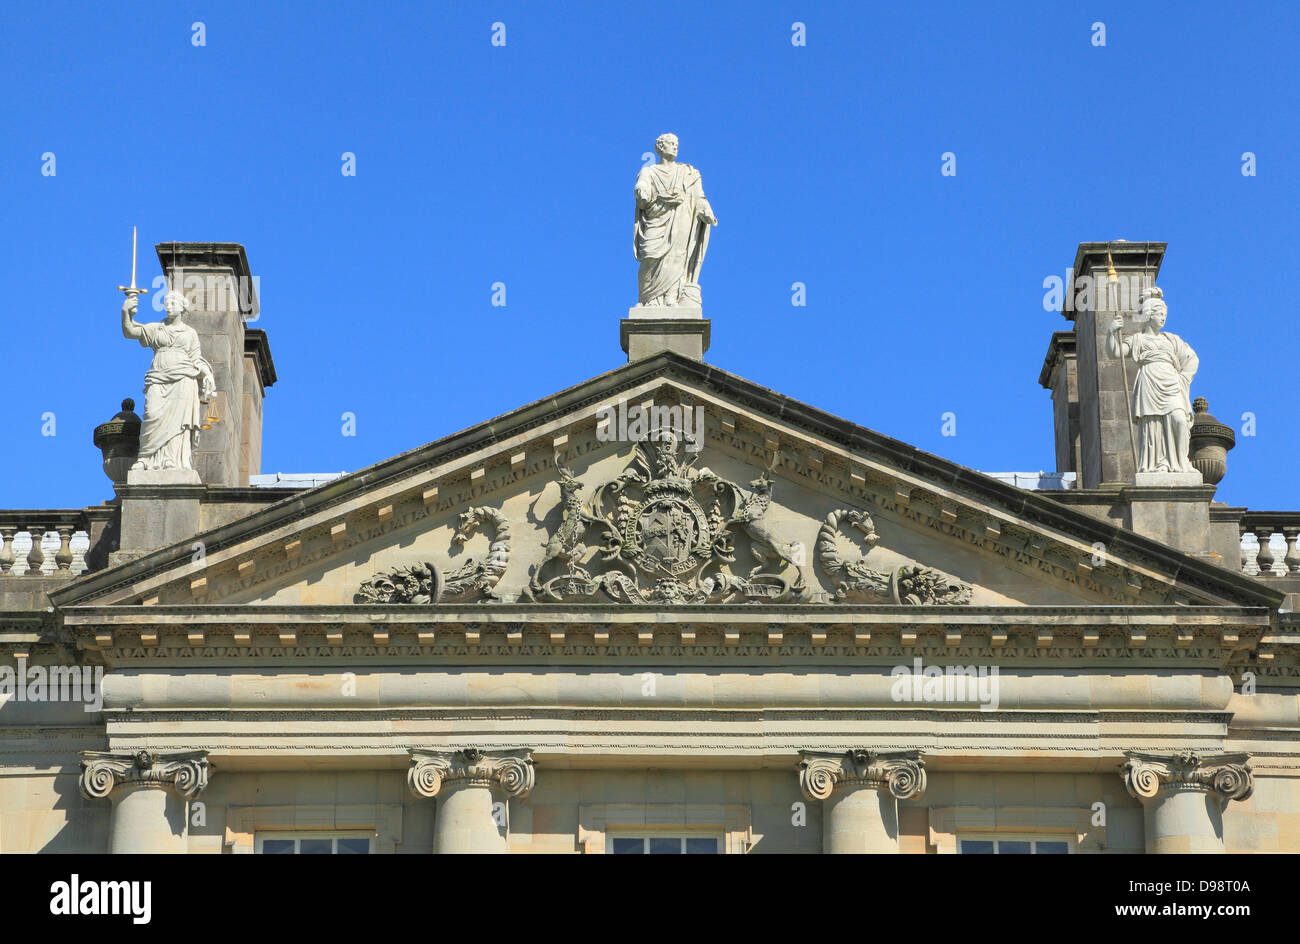 Houghton Hall, Norfolk, detail of coat of arms and statuary, England UK - Stock Image